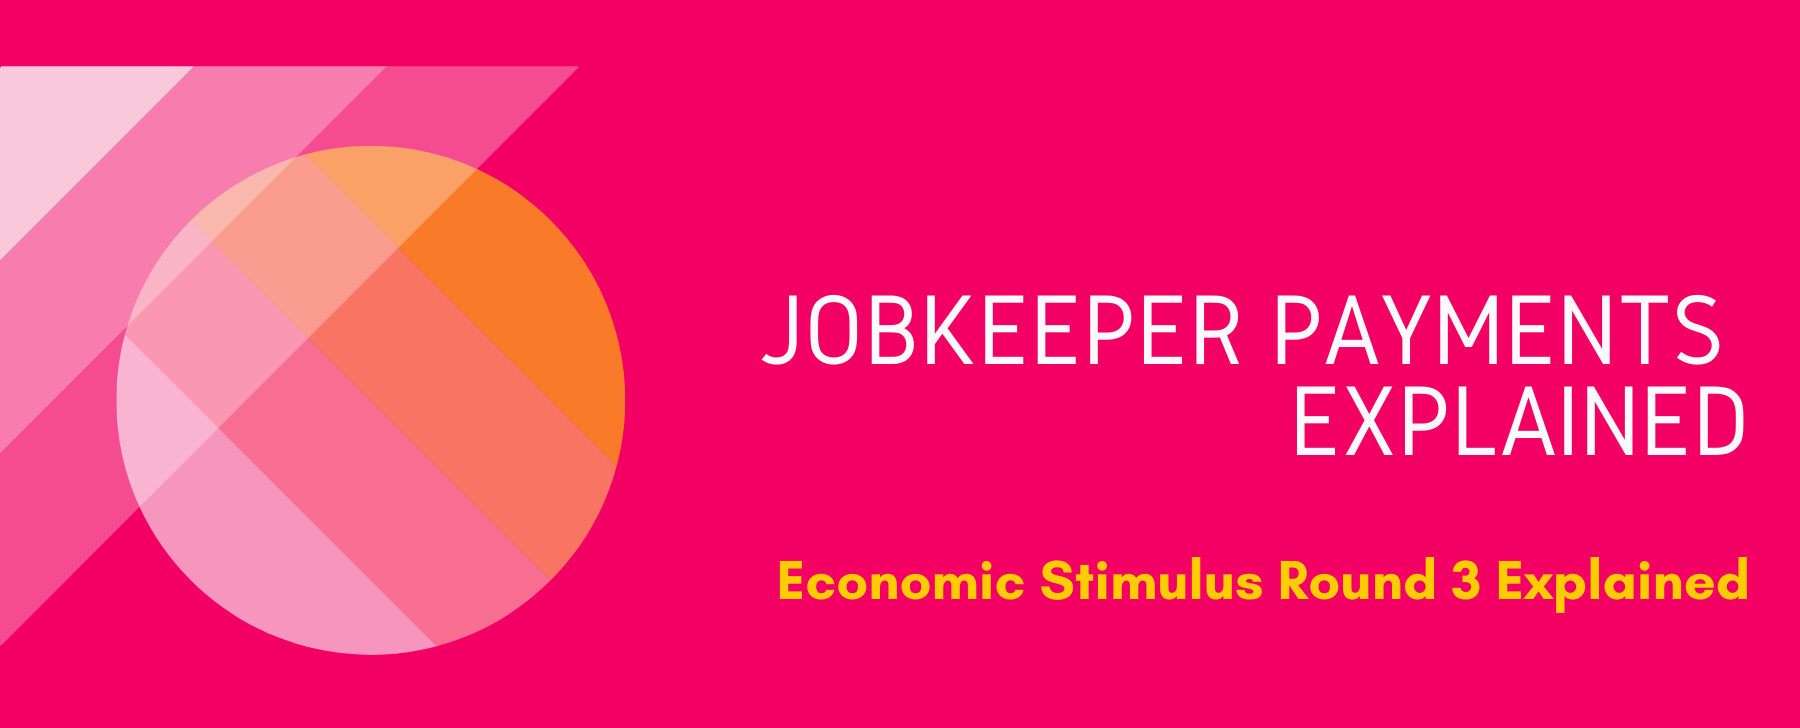 jobkeeper payments explained